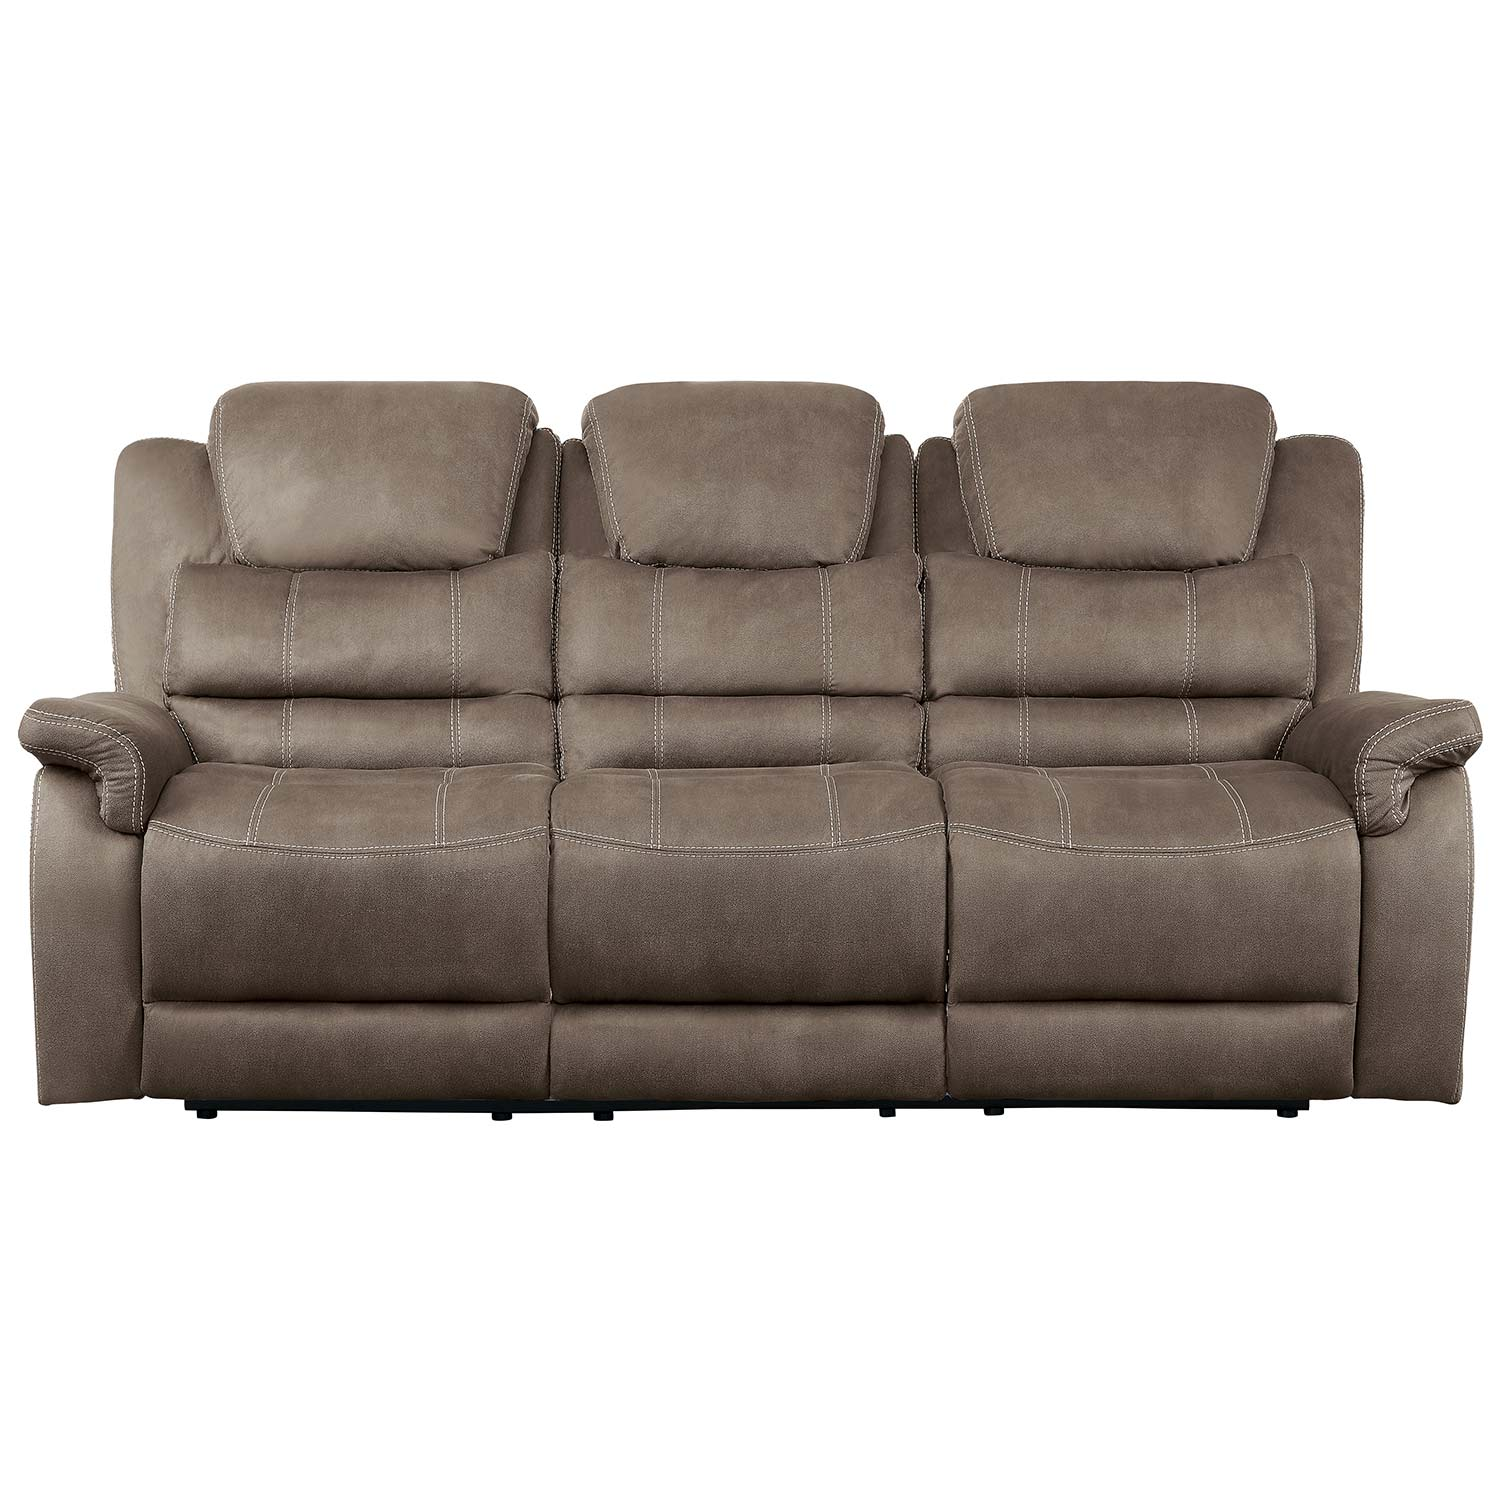 Homelegance Shola Double Reclining Sofa with Drop-Down Cup holders and Receptacles - Brown